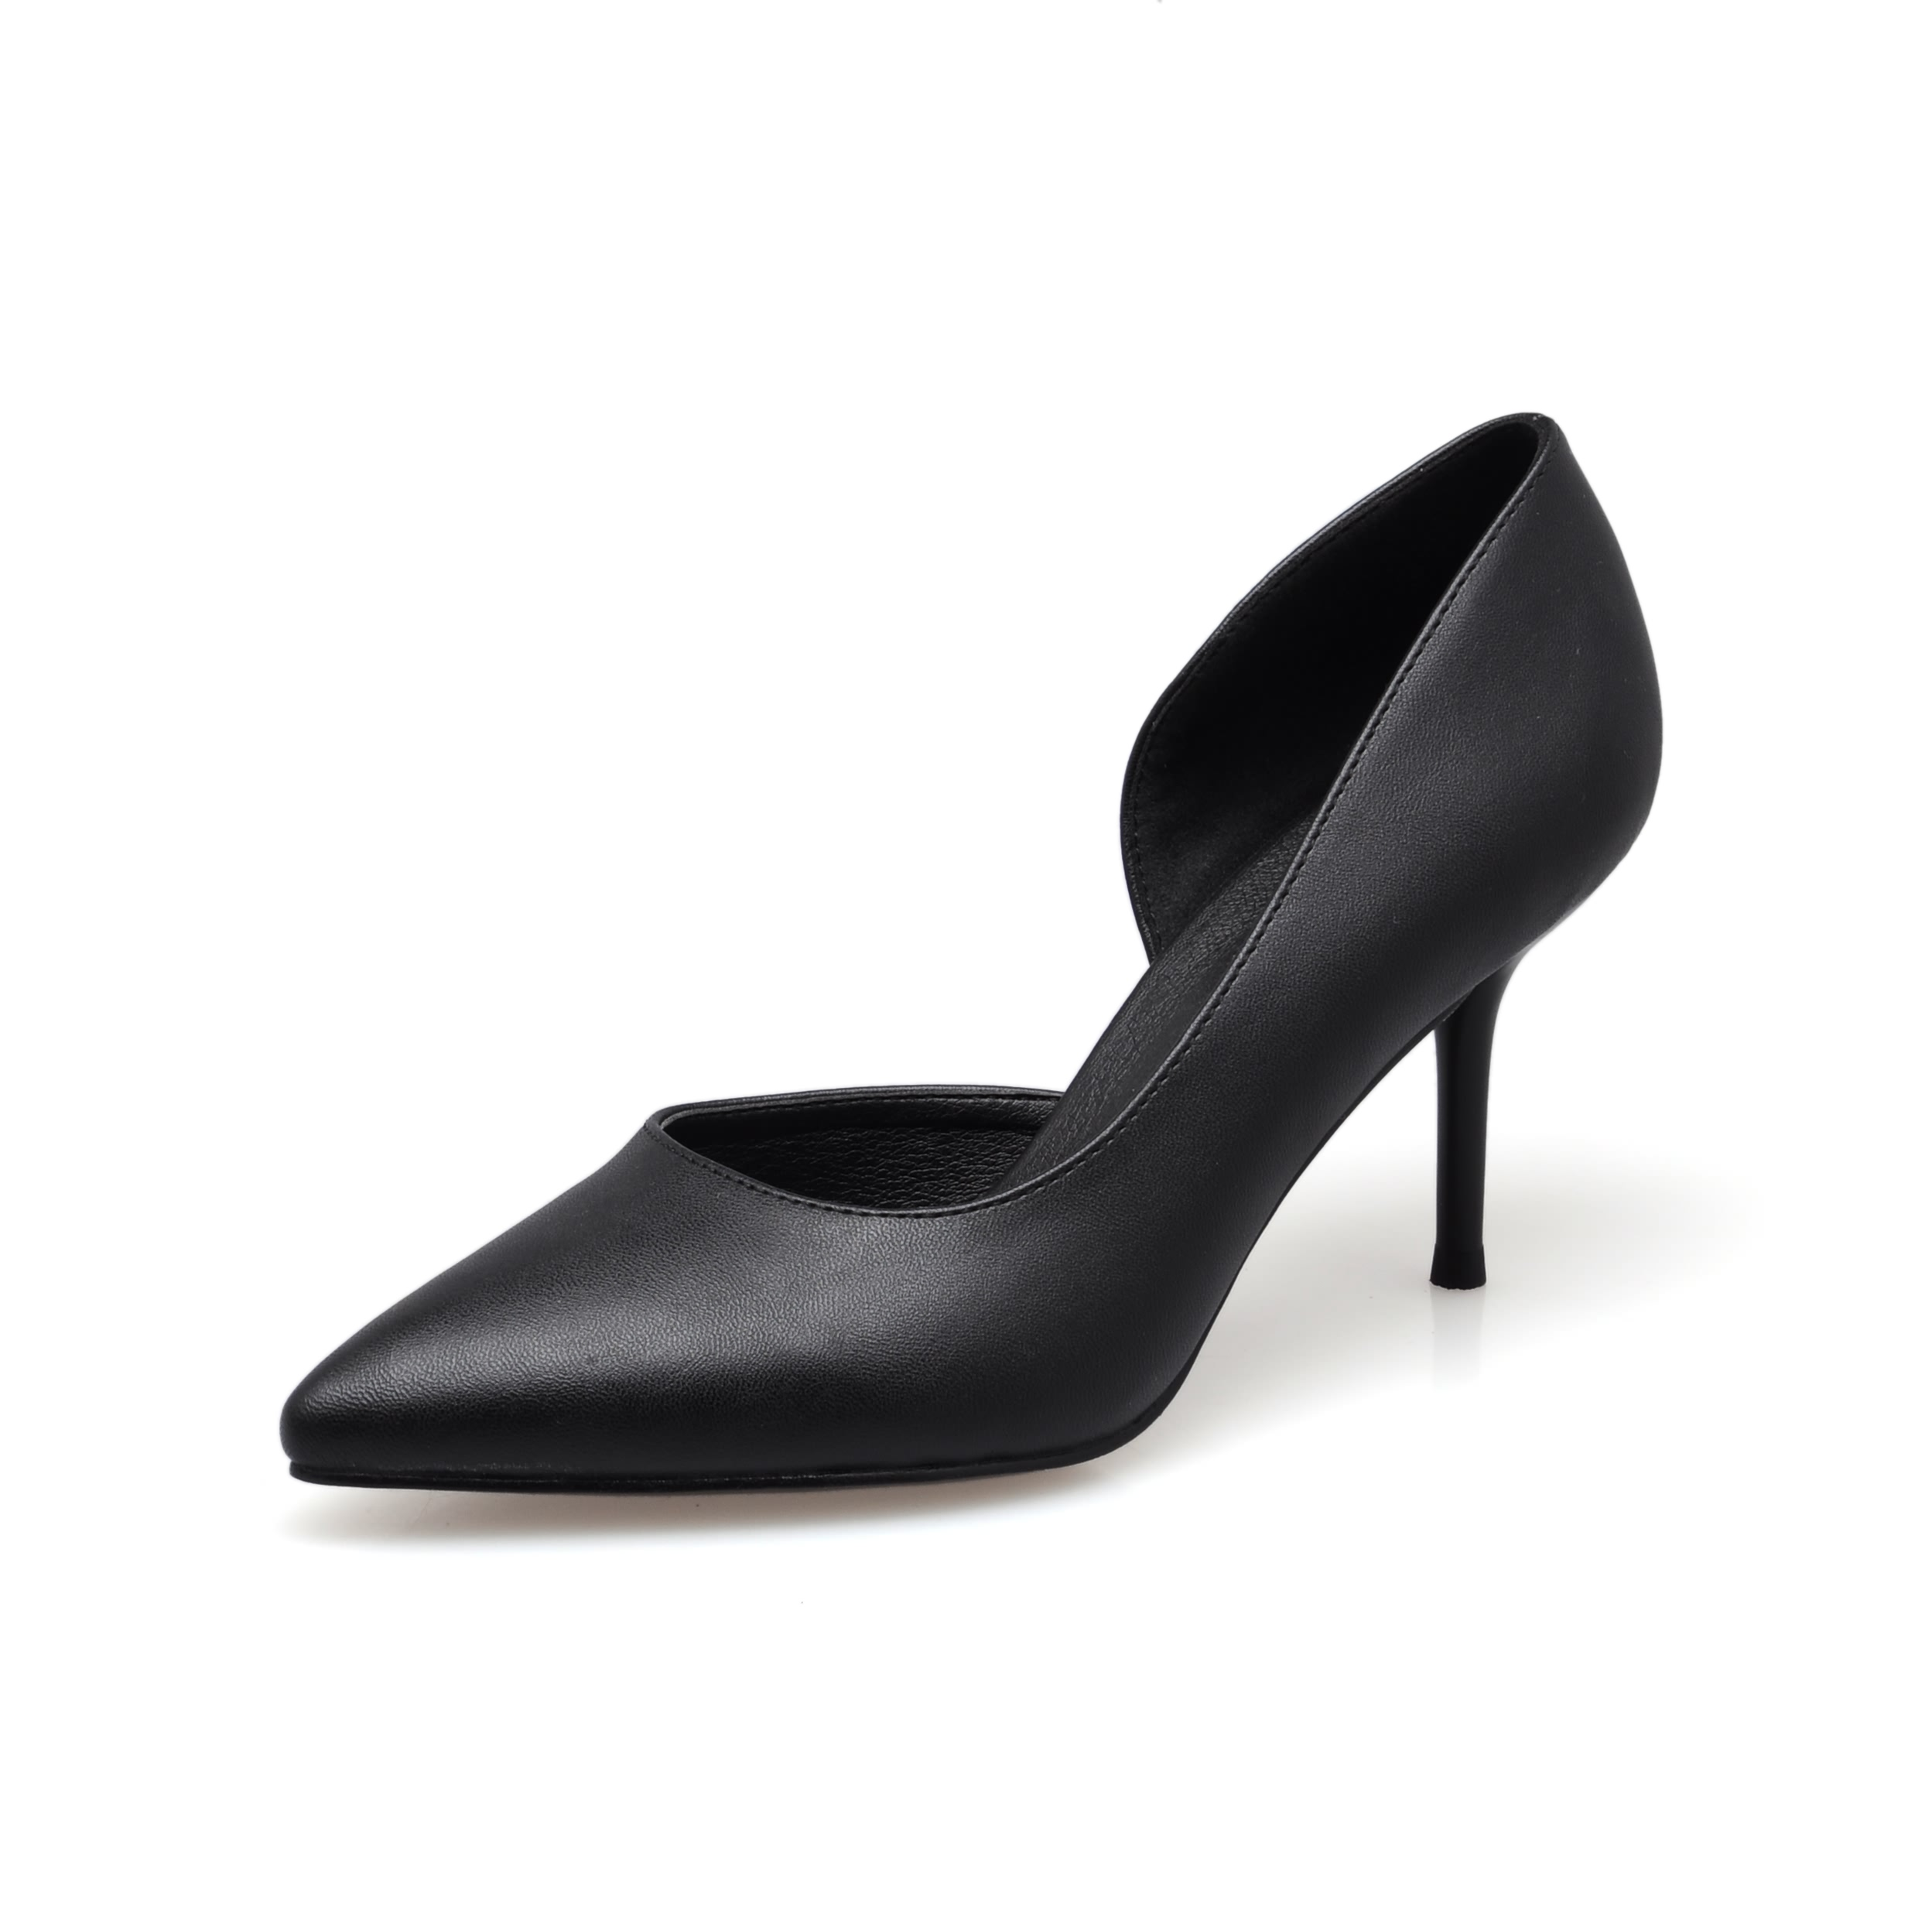 New Spring Summer Red High Heels Good Quality Pointed Toe Women Lady Solid Simple Casual Genuine Leather Pumps Shoes SMYBK-063 2017 shoes women med heels tassel slip on women pumps solid round toe high quality loafers preppy style lady casual shoes 17